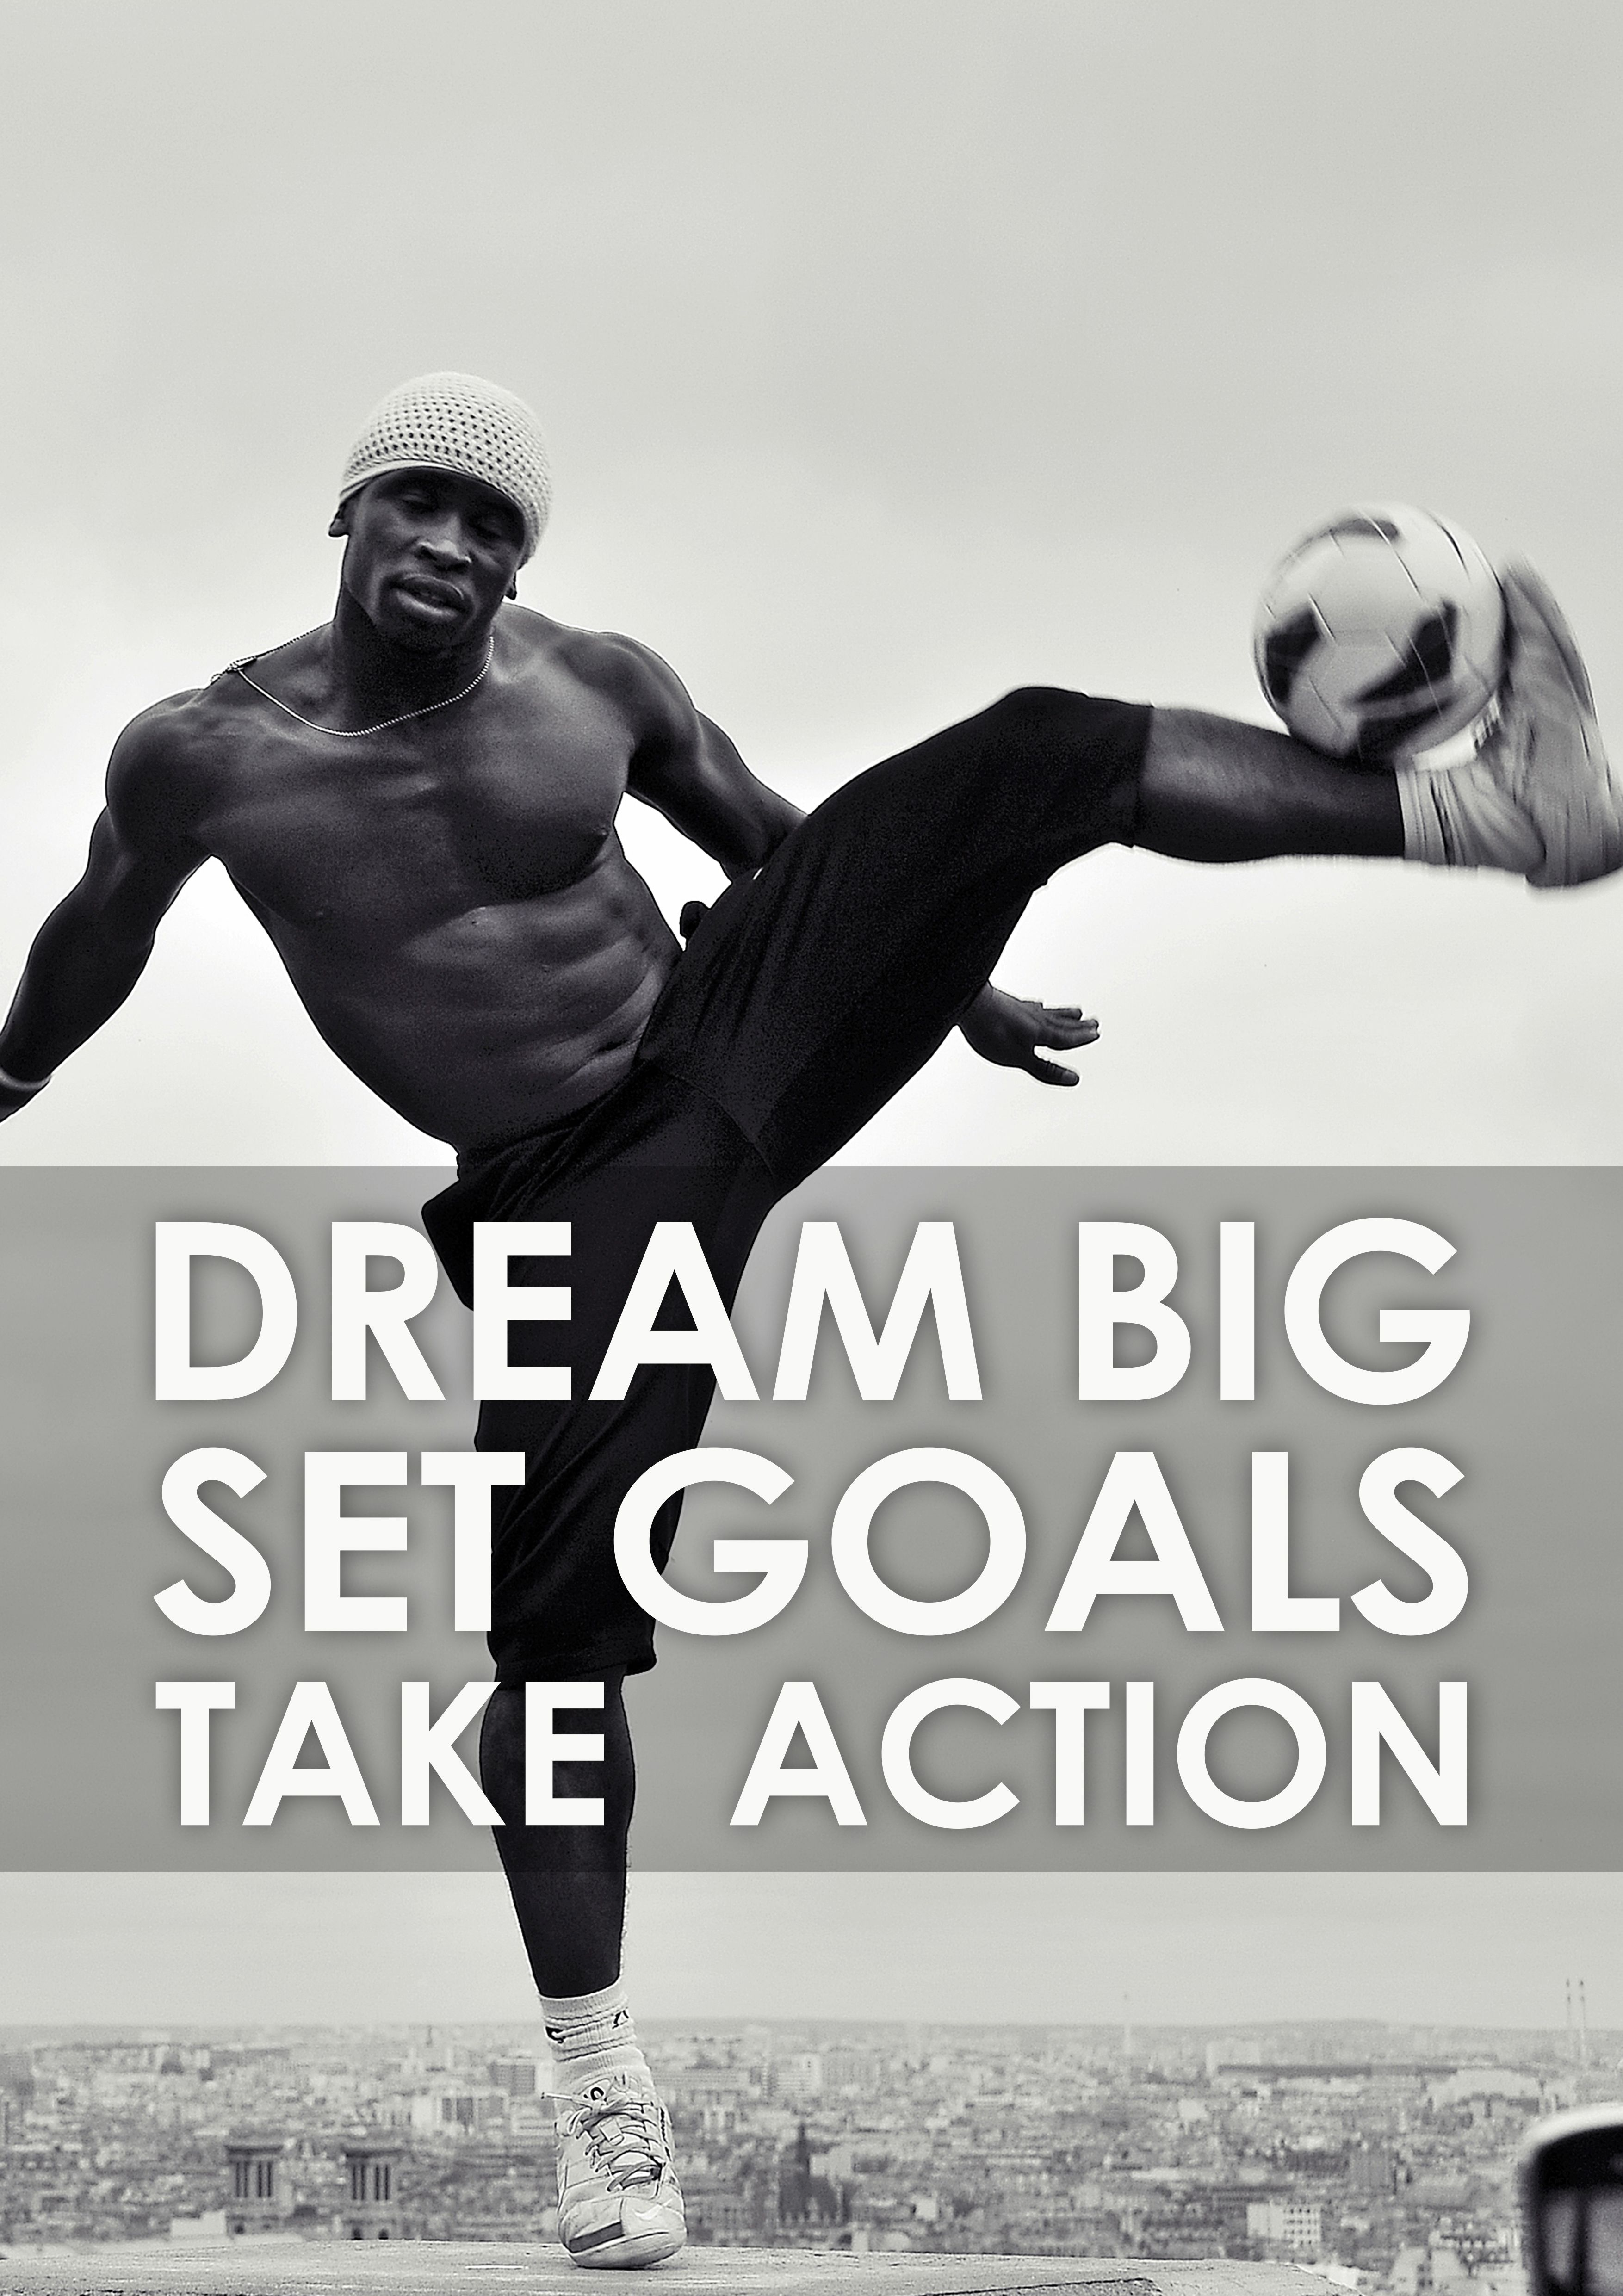 Motivational quotes dream quotes dream big quotes action quotes - Dream Big Fitness Sport Gym Workout Quotes Aliyari